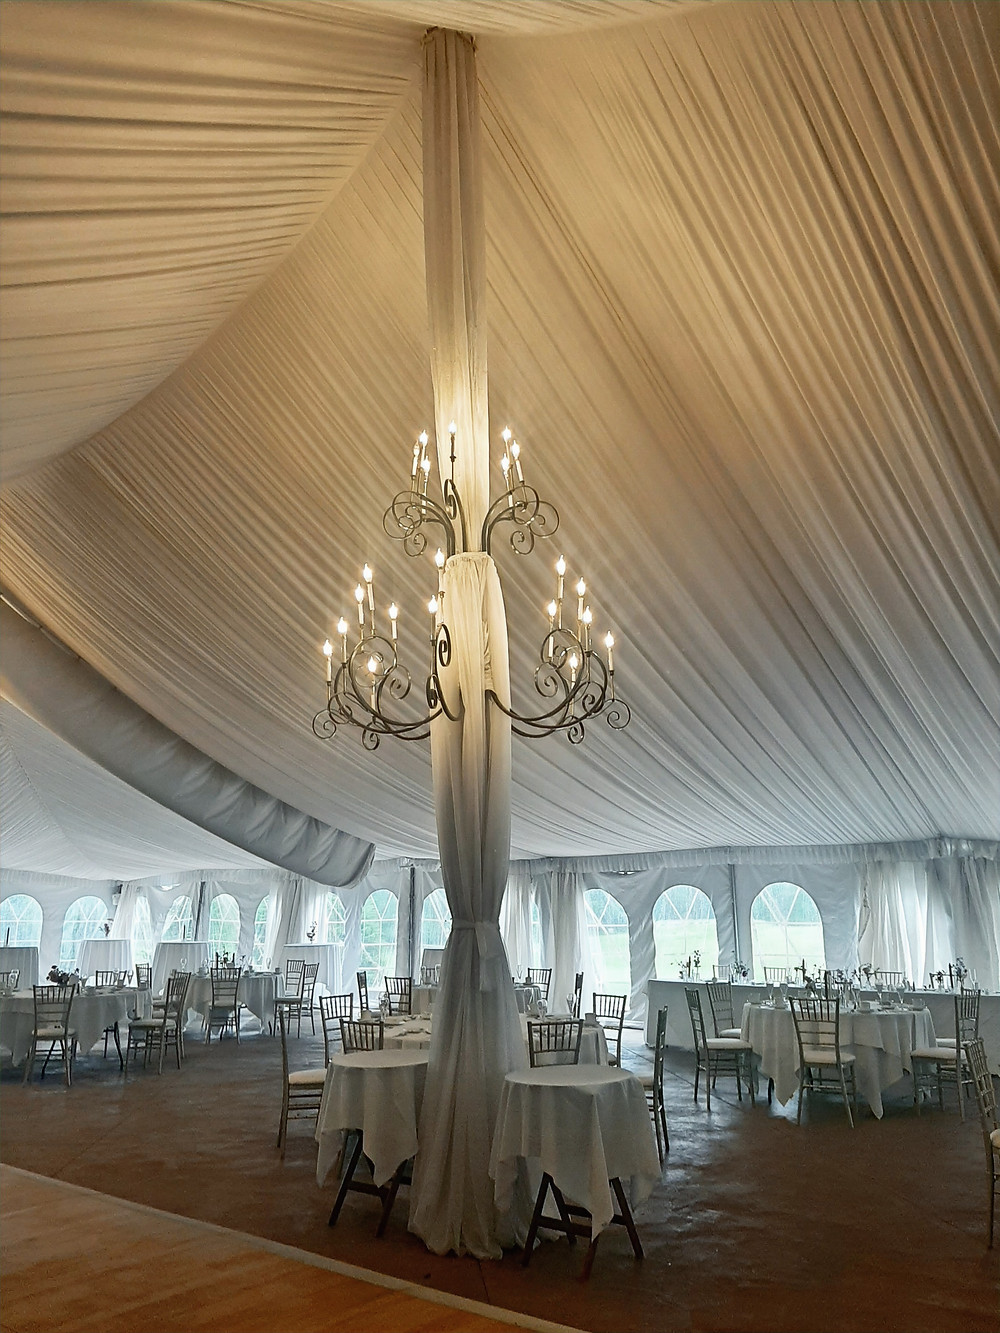 Meadowbrook Hall Tent. Music by Rondo String Quartet.